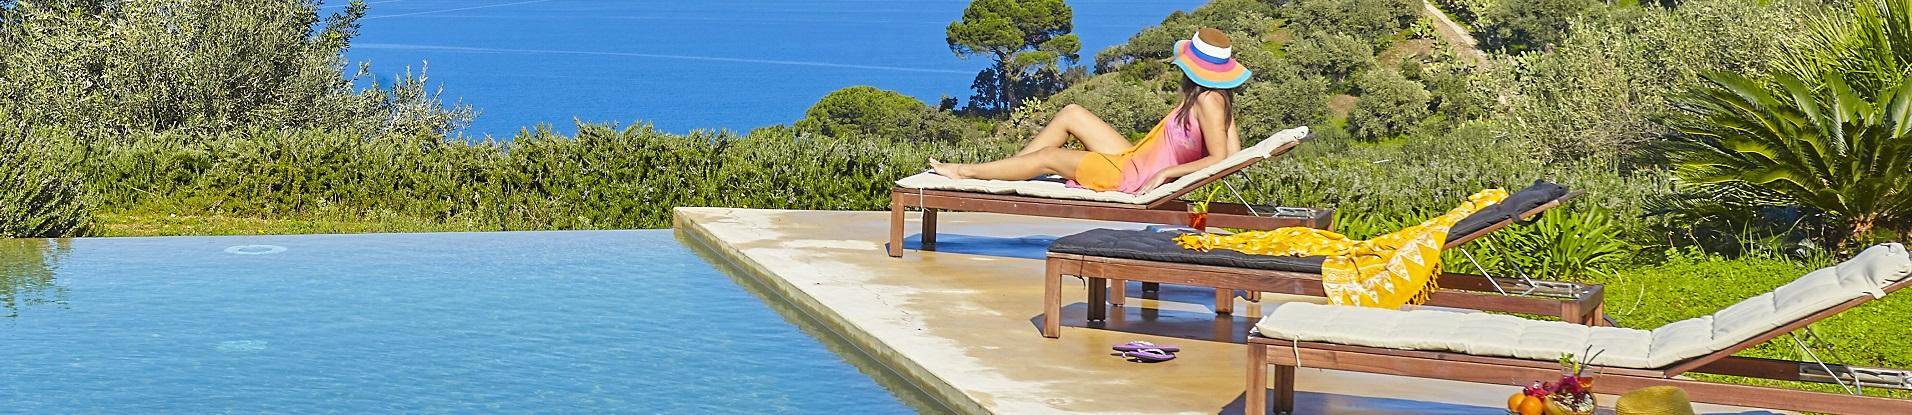 All Wish Sicily holiday homes